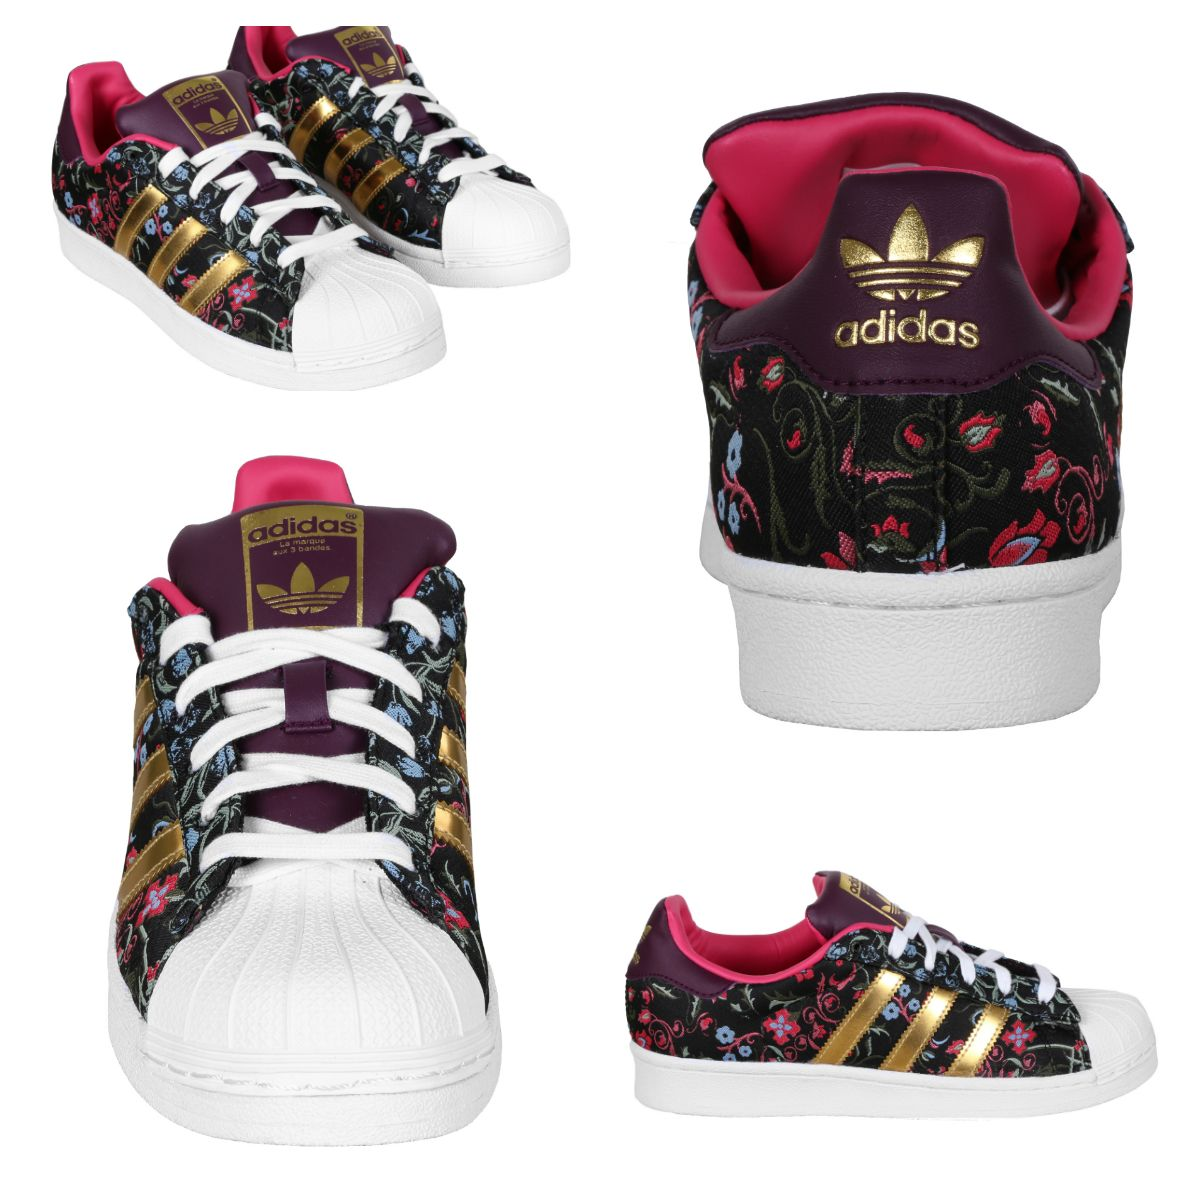 outlet store 0aba4 71d59 adidas Originals Shoes Wmns Superstar Russian-inspired floral graphics and  golden 3-Stripes.